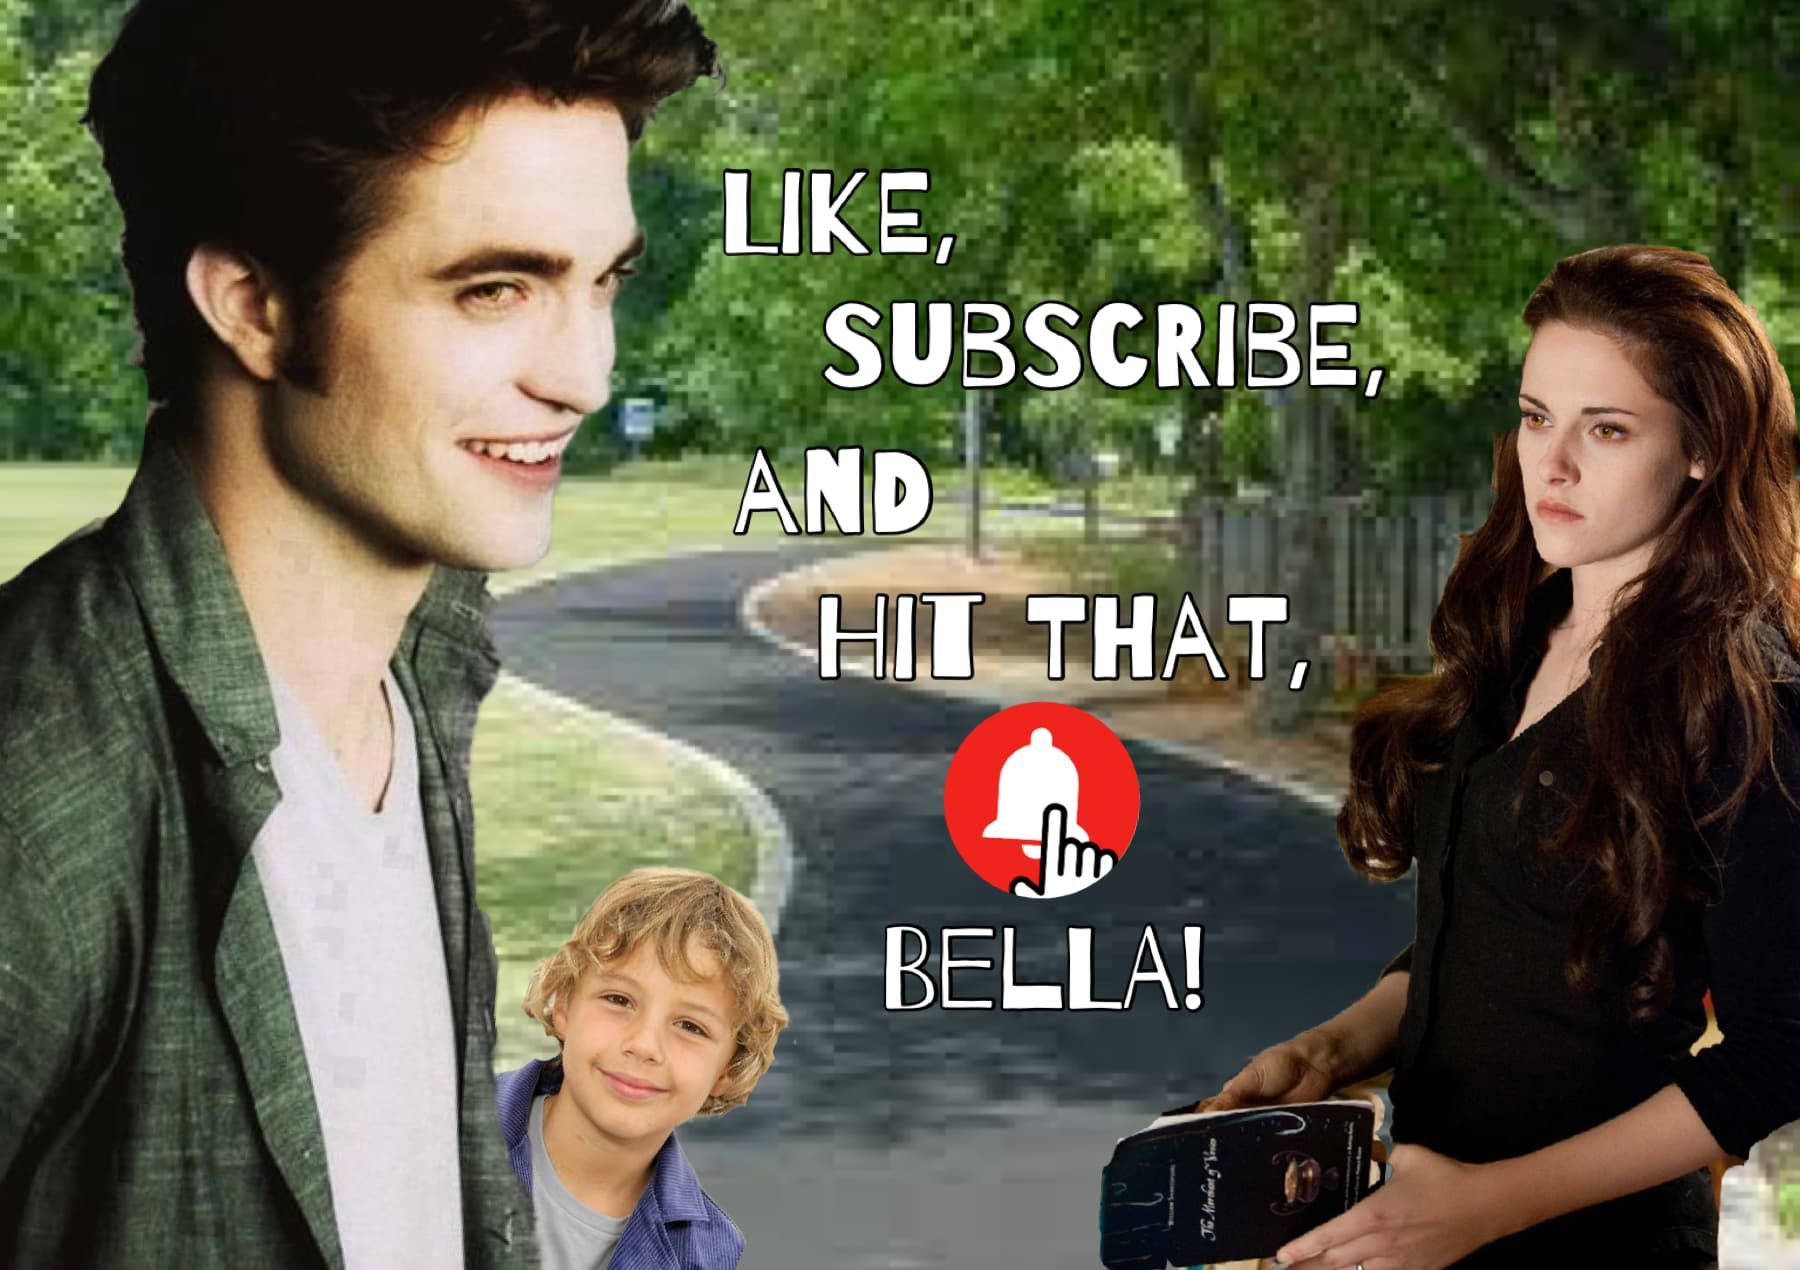 Like, Subscribe, and Hit That, Bella!